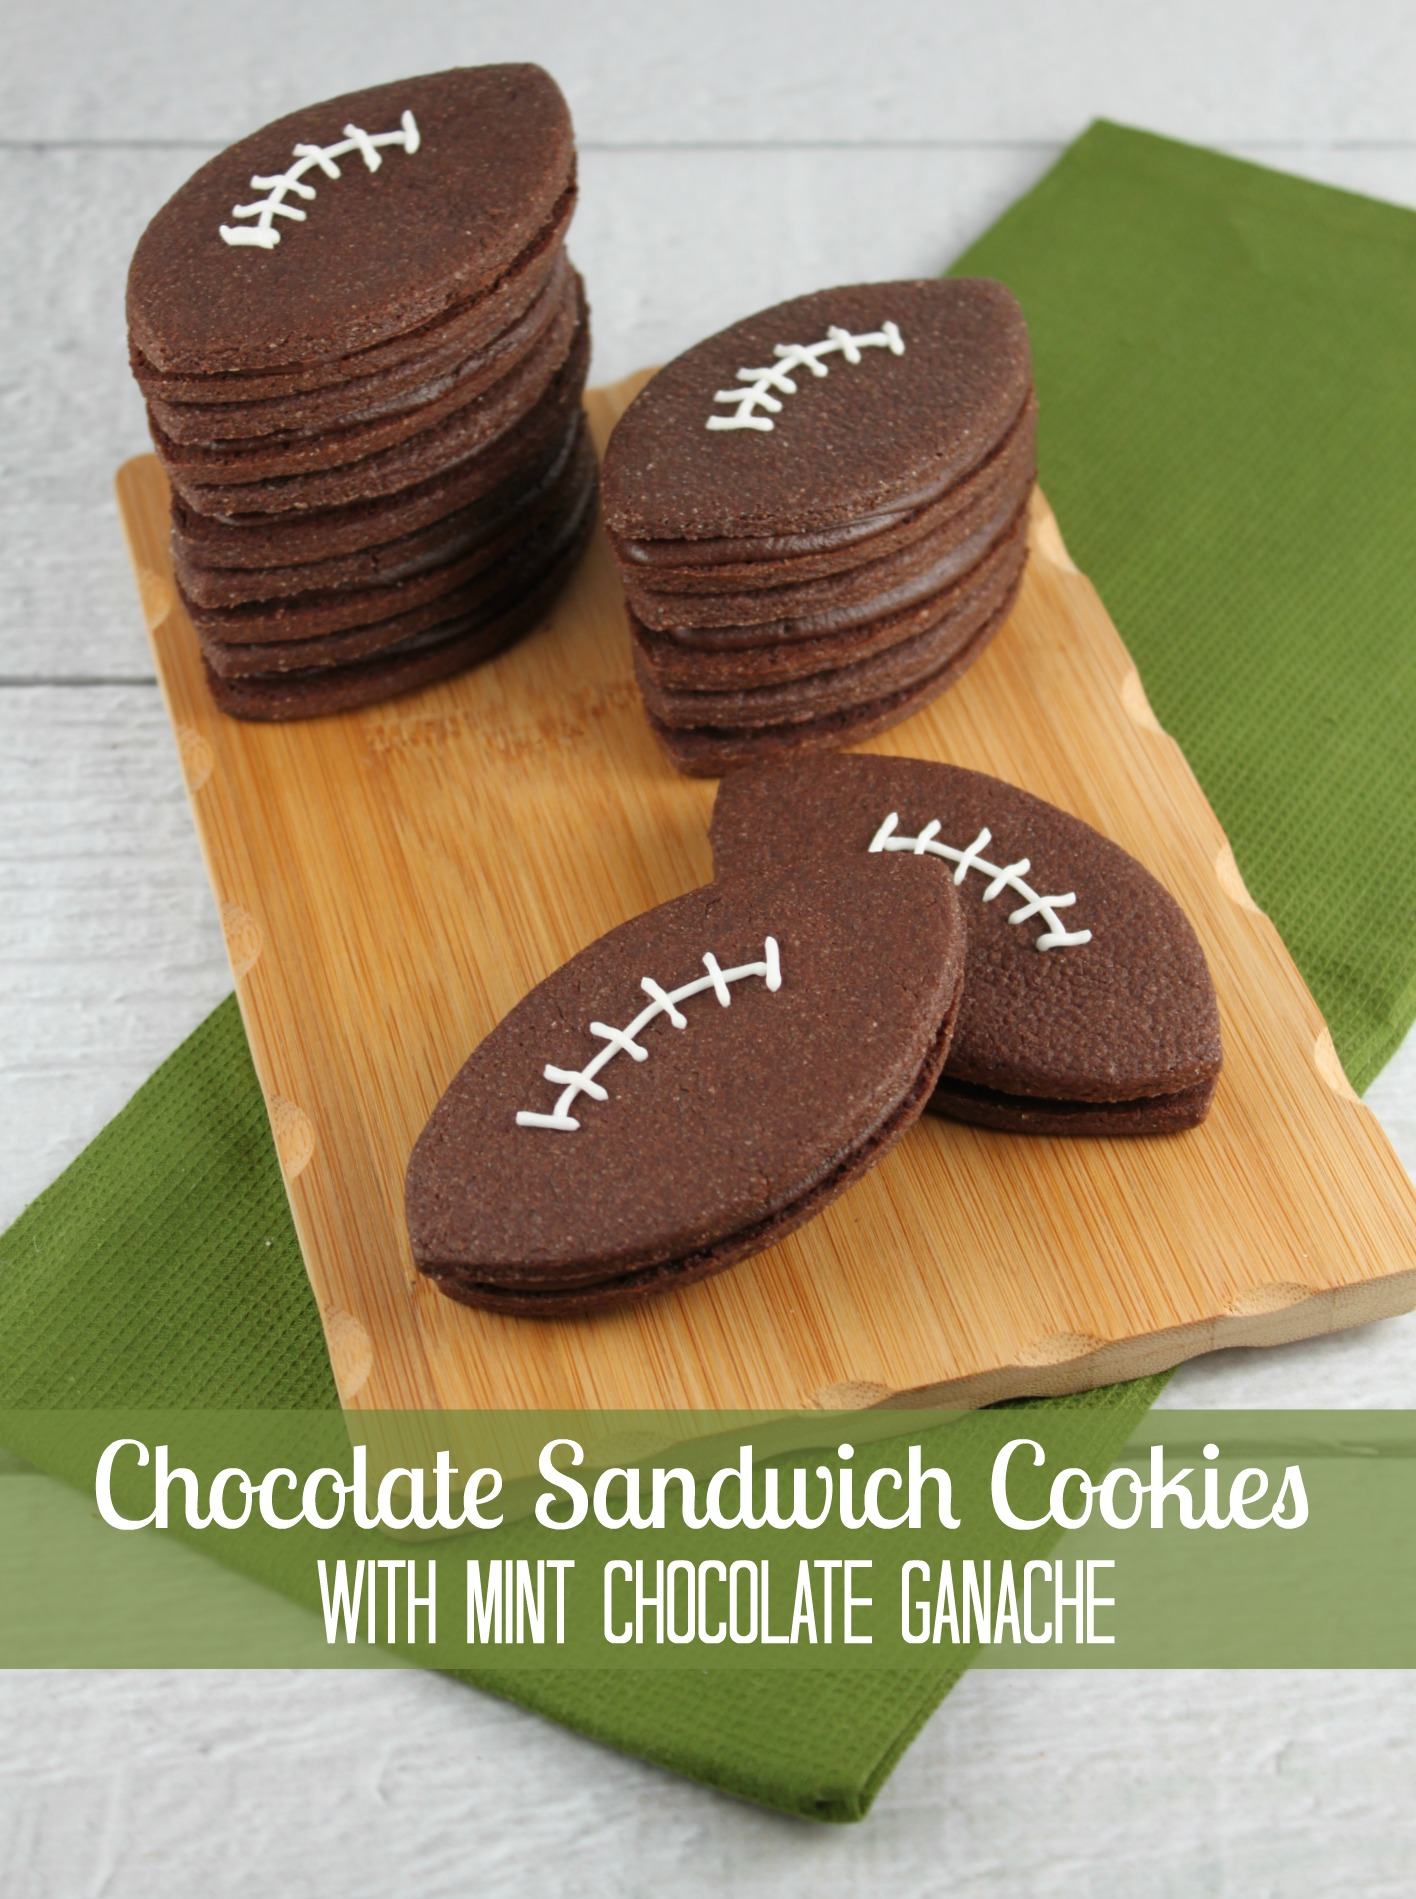 Chocolate Sandwich Cookies With Mint Chocolate Ganache ...